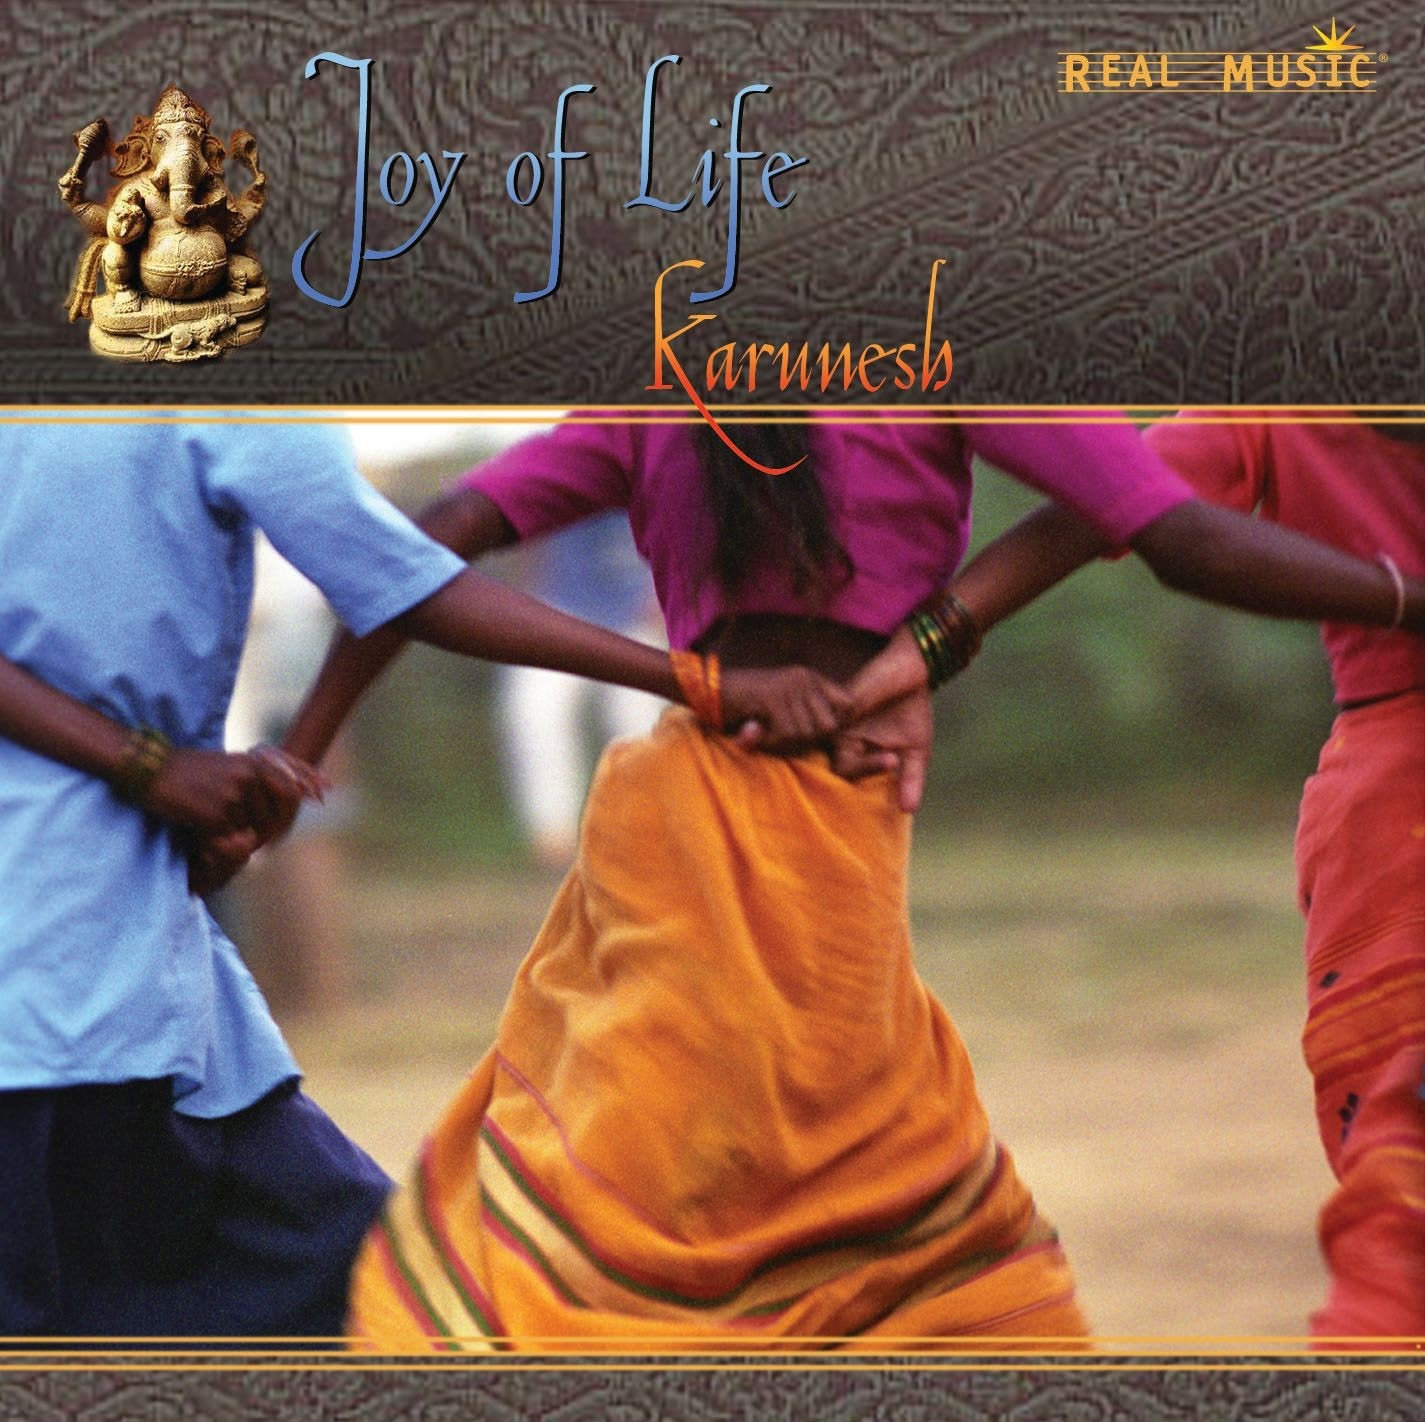 Karunesh album Joy Of Life